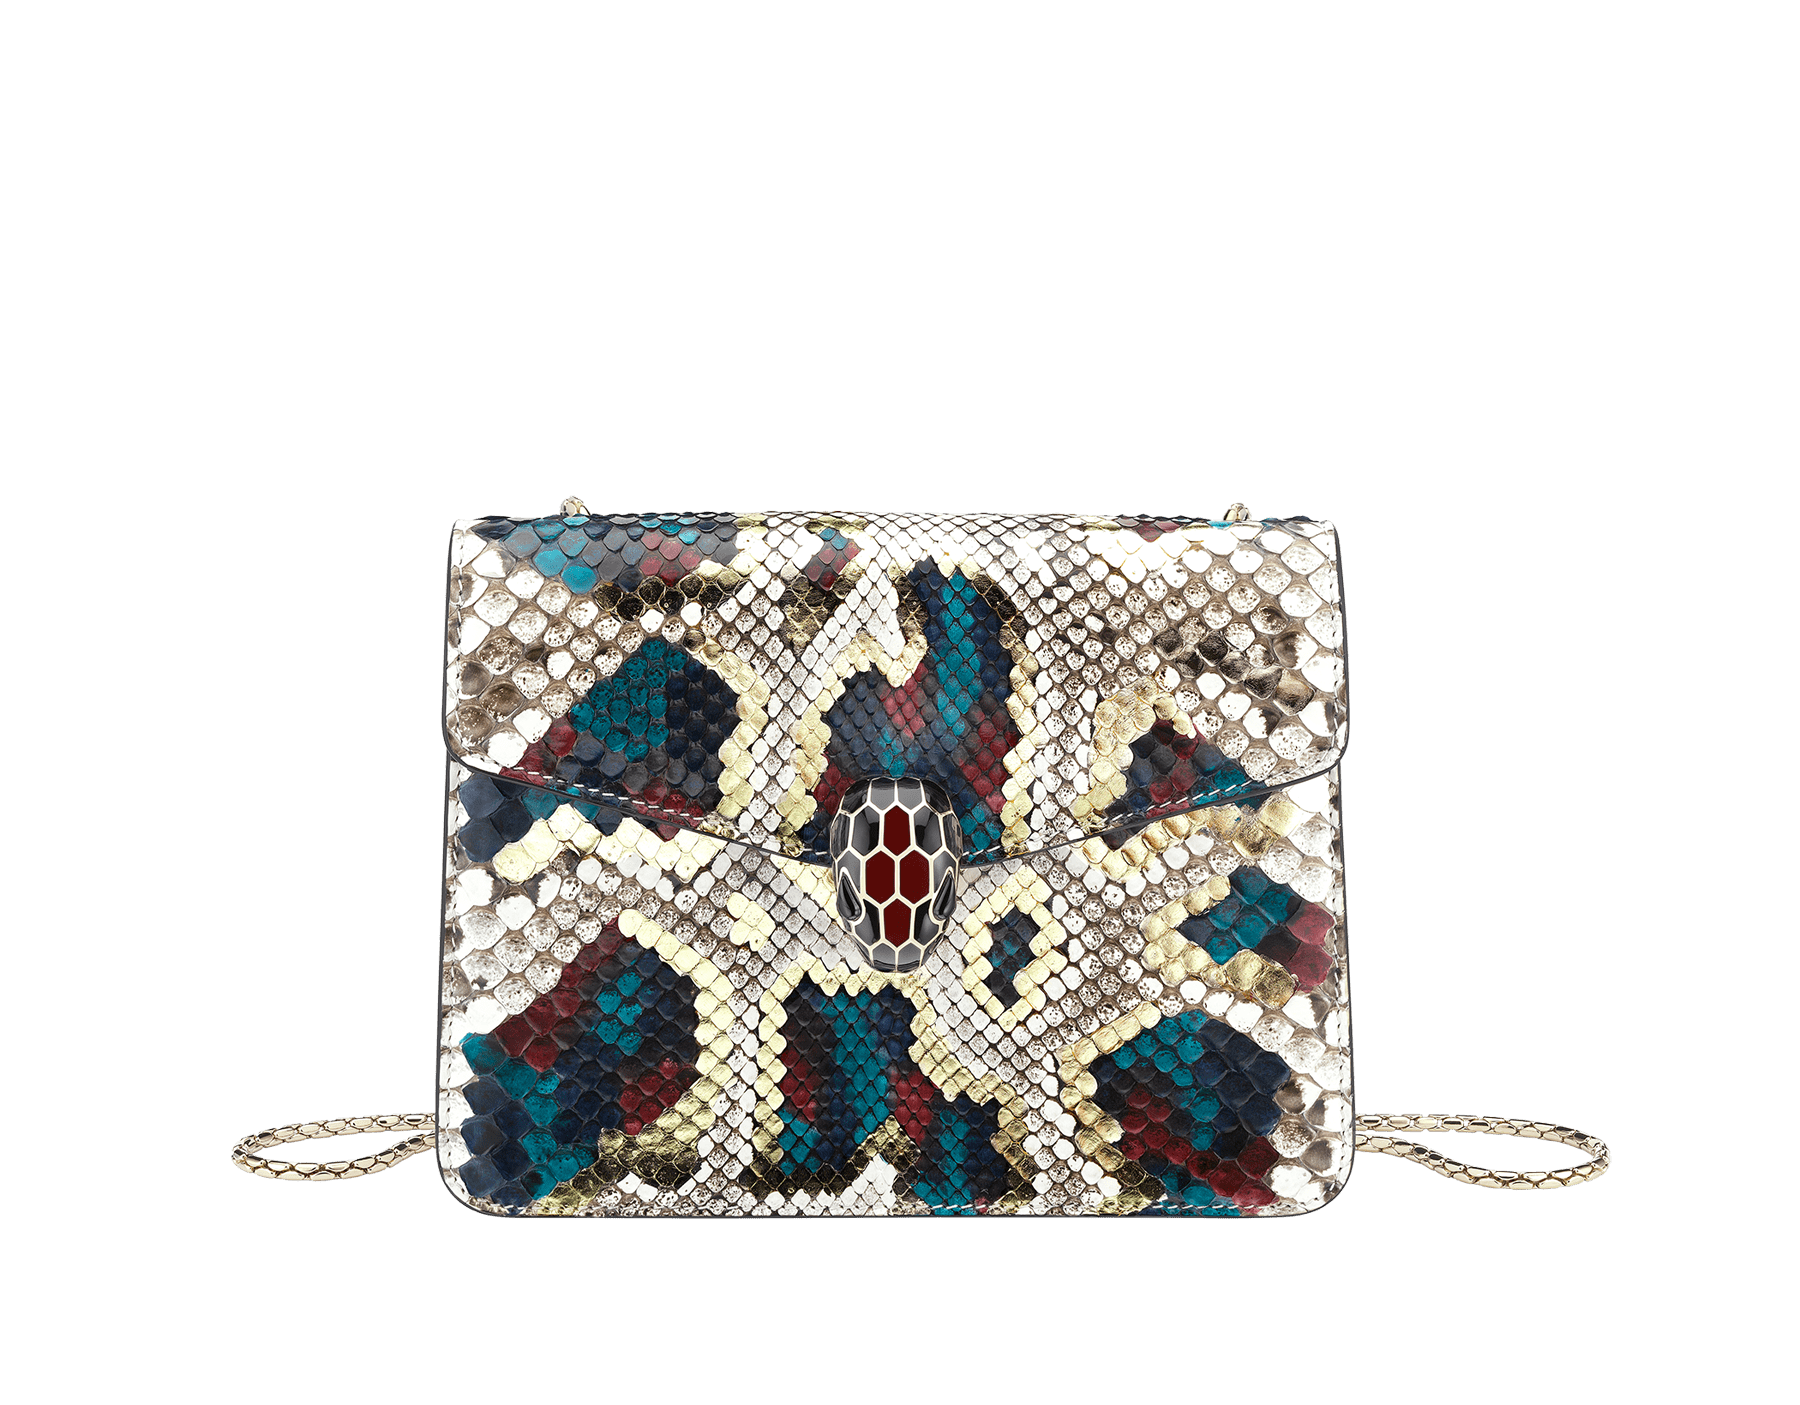 "Borsa a tracolla ""Serpenti Forever"" in pitone multicolore ""Magic Chromaline"". Iconica chiusura ""Serpenti"" in ottone placcato oro chiaro con squame in smalto bianco e nero e occhi in onice nera. 422-Pc image 1"